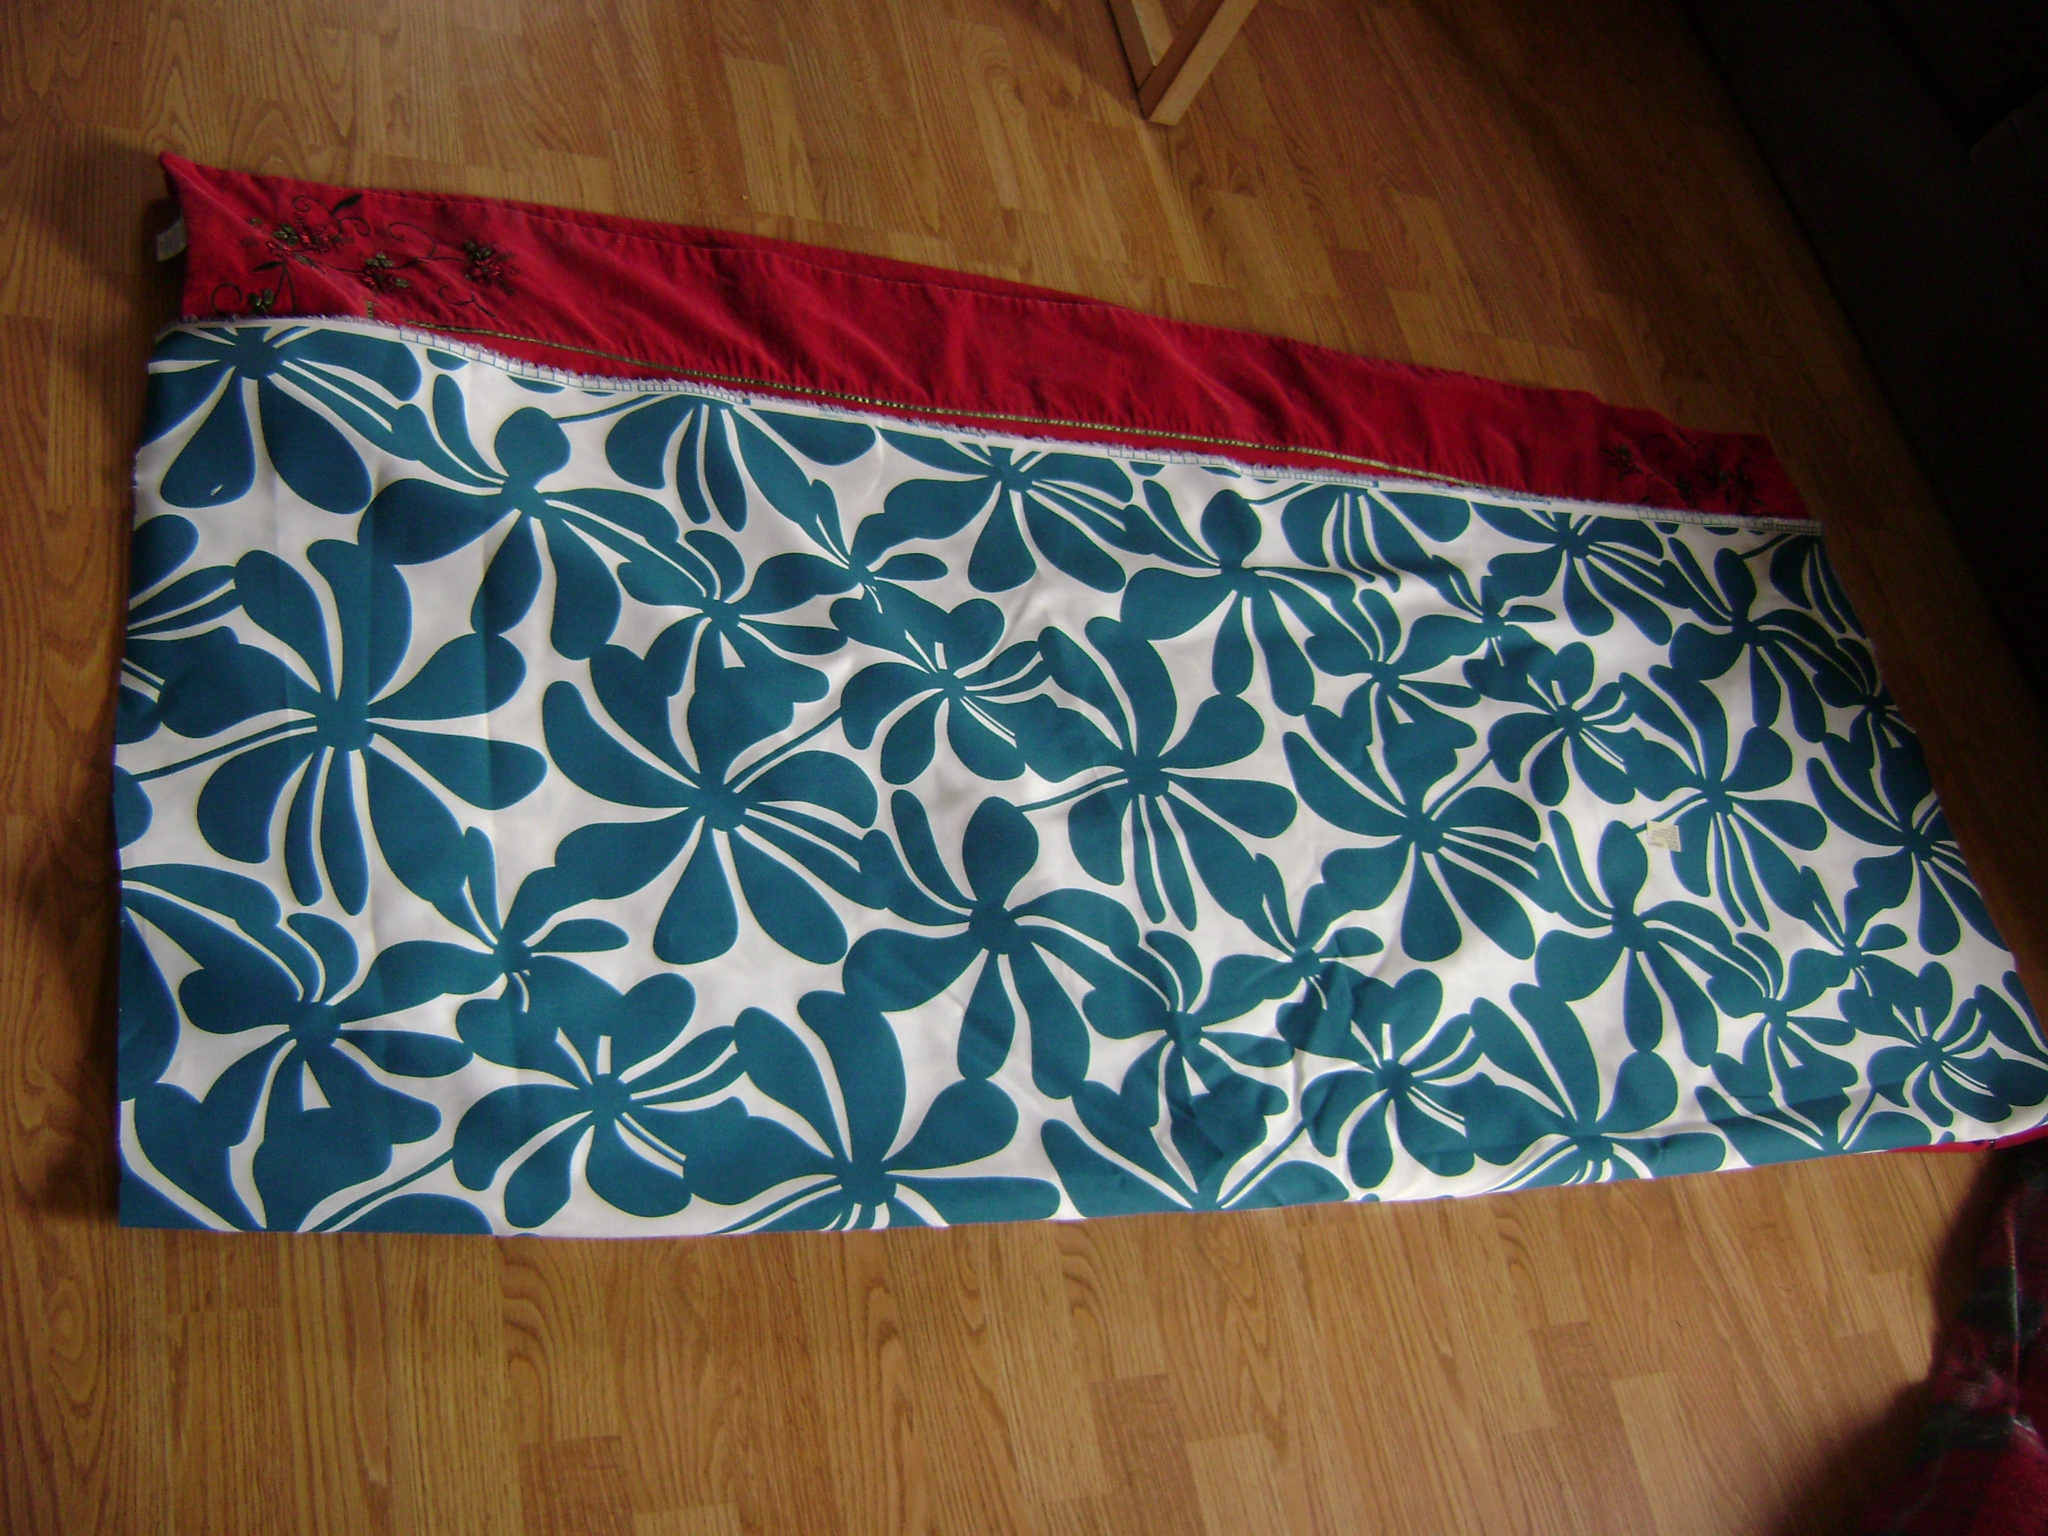 How to make a fabric table cover - I Started By Taking My Current Table Cloth And Folding It In Half I Laid My New Cloth Over It And Cut It To The Same Length